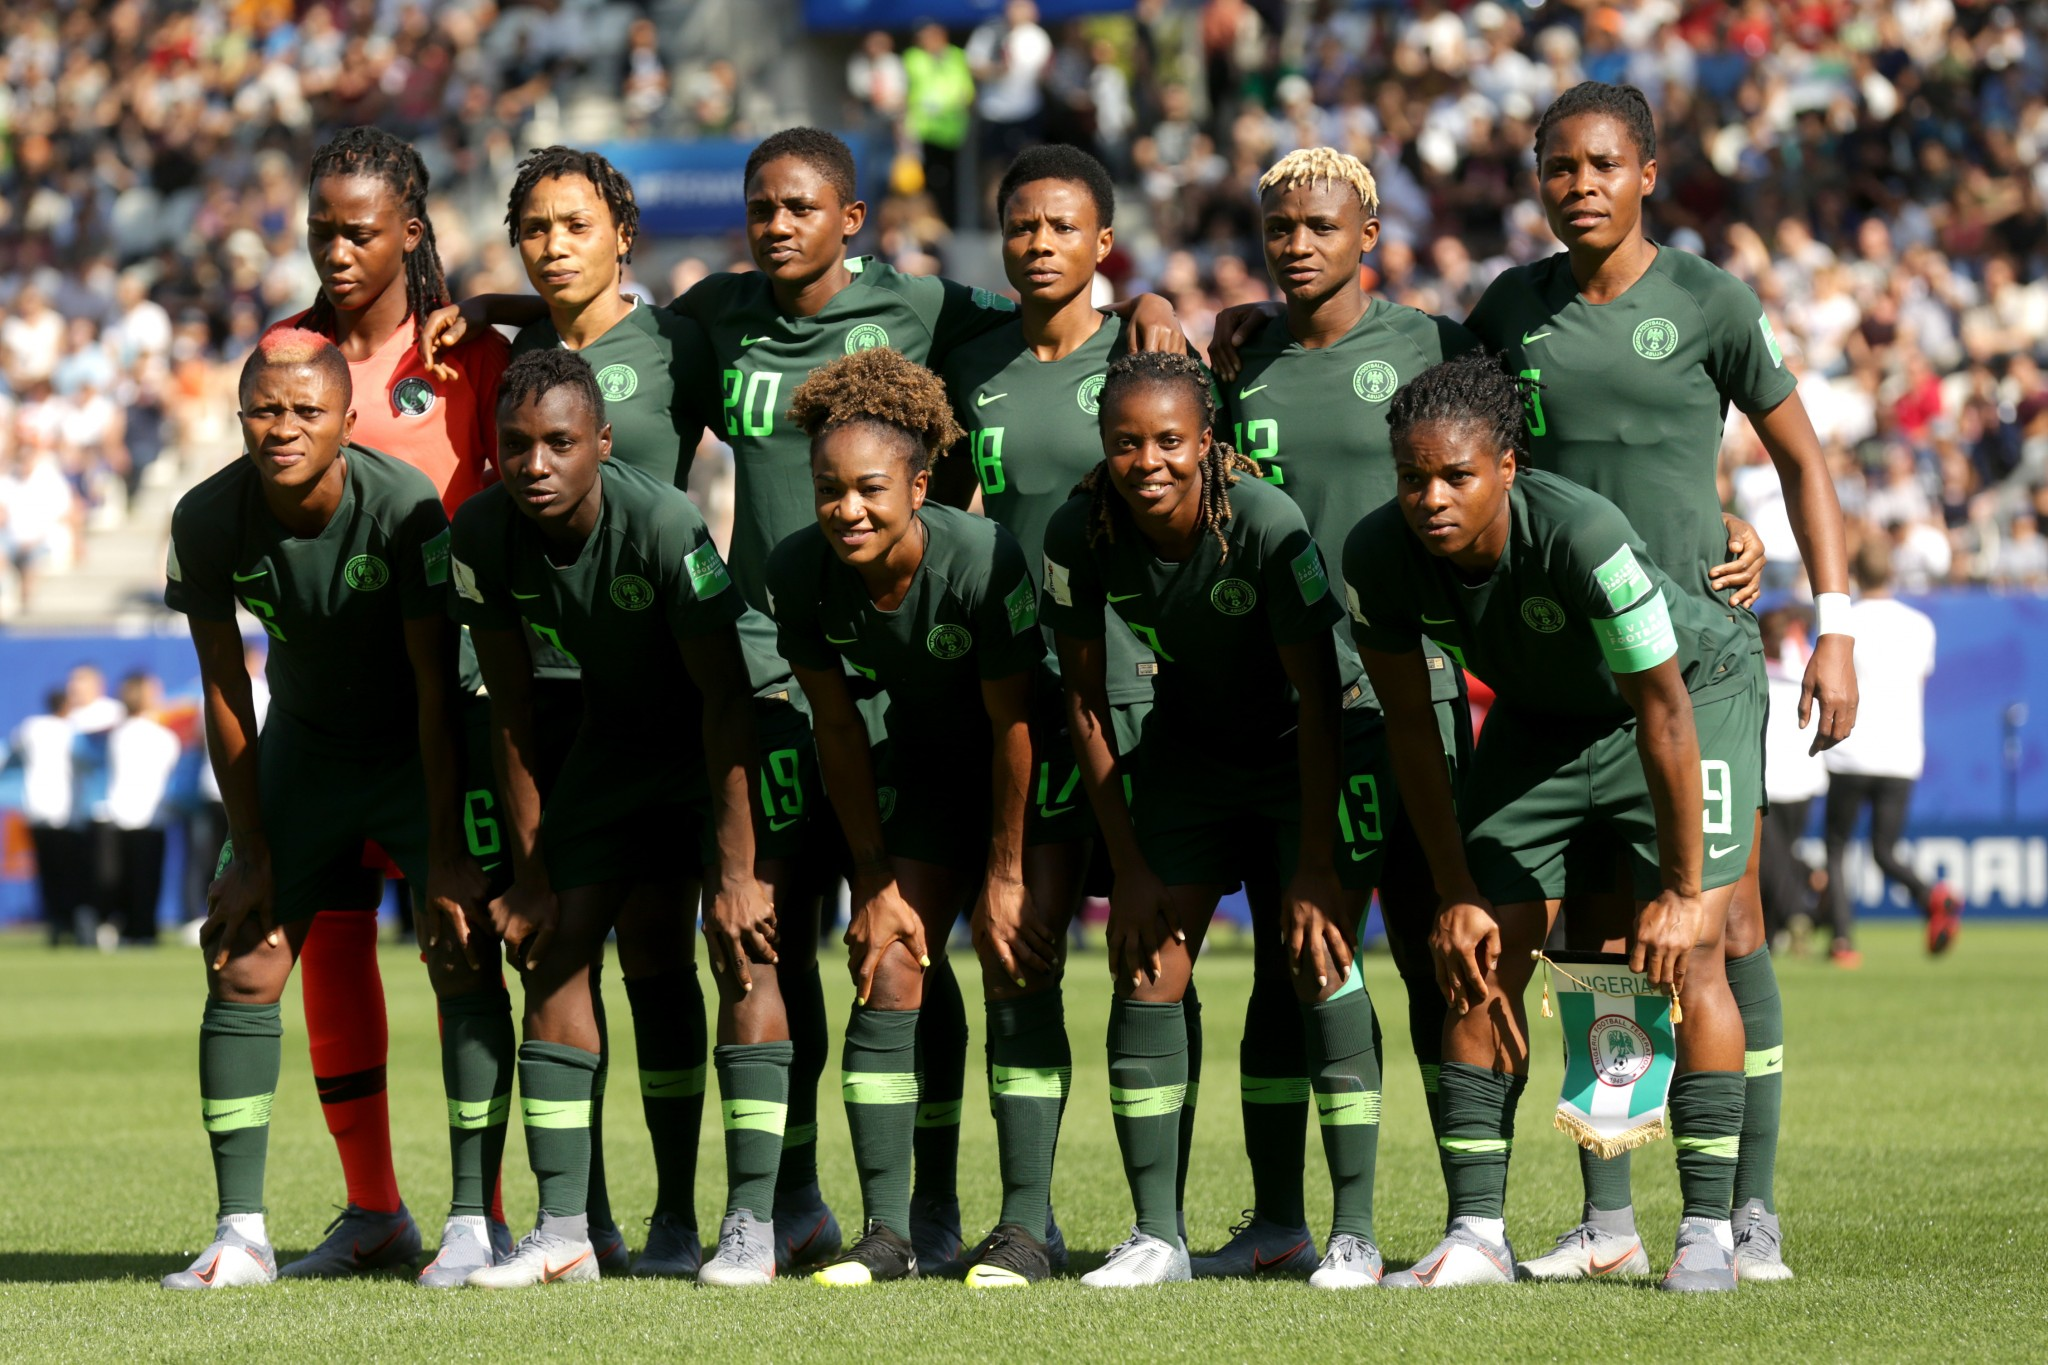 Super Falcons eliminated from World Cup